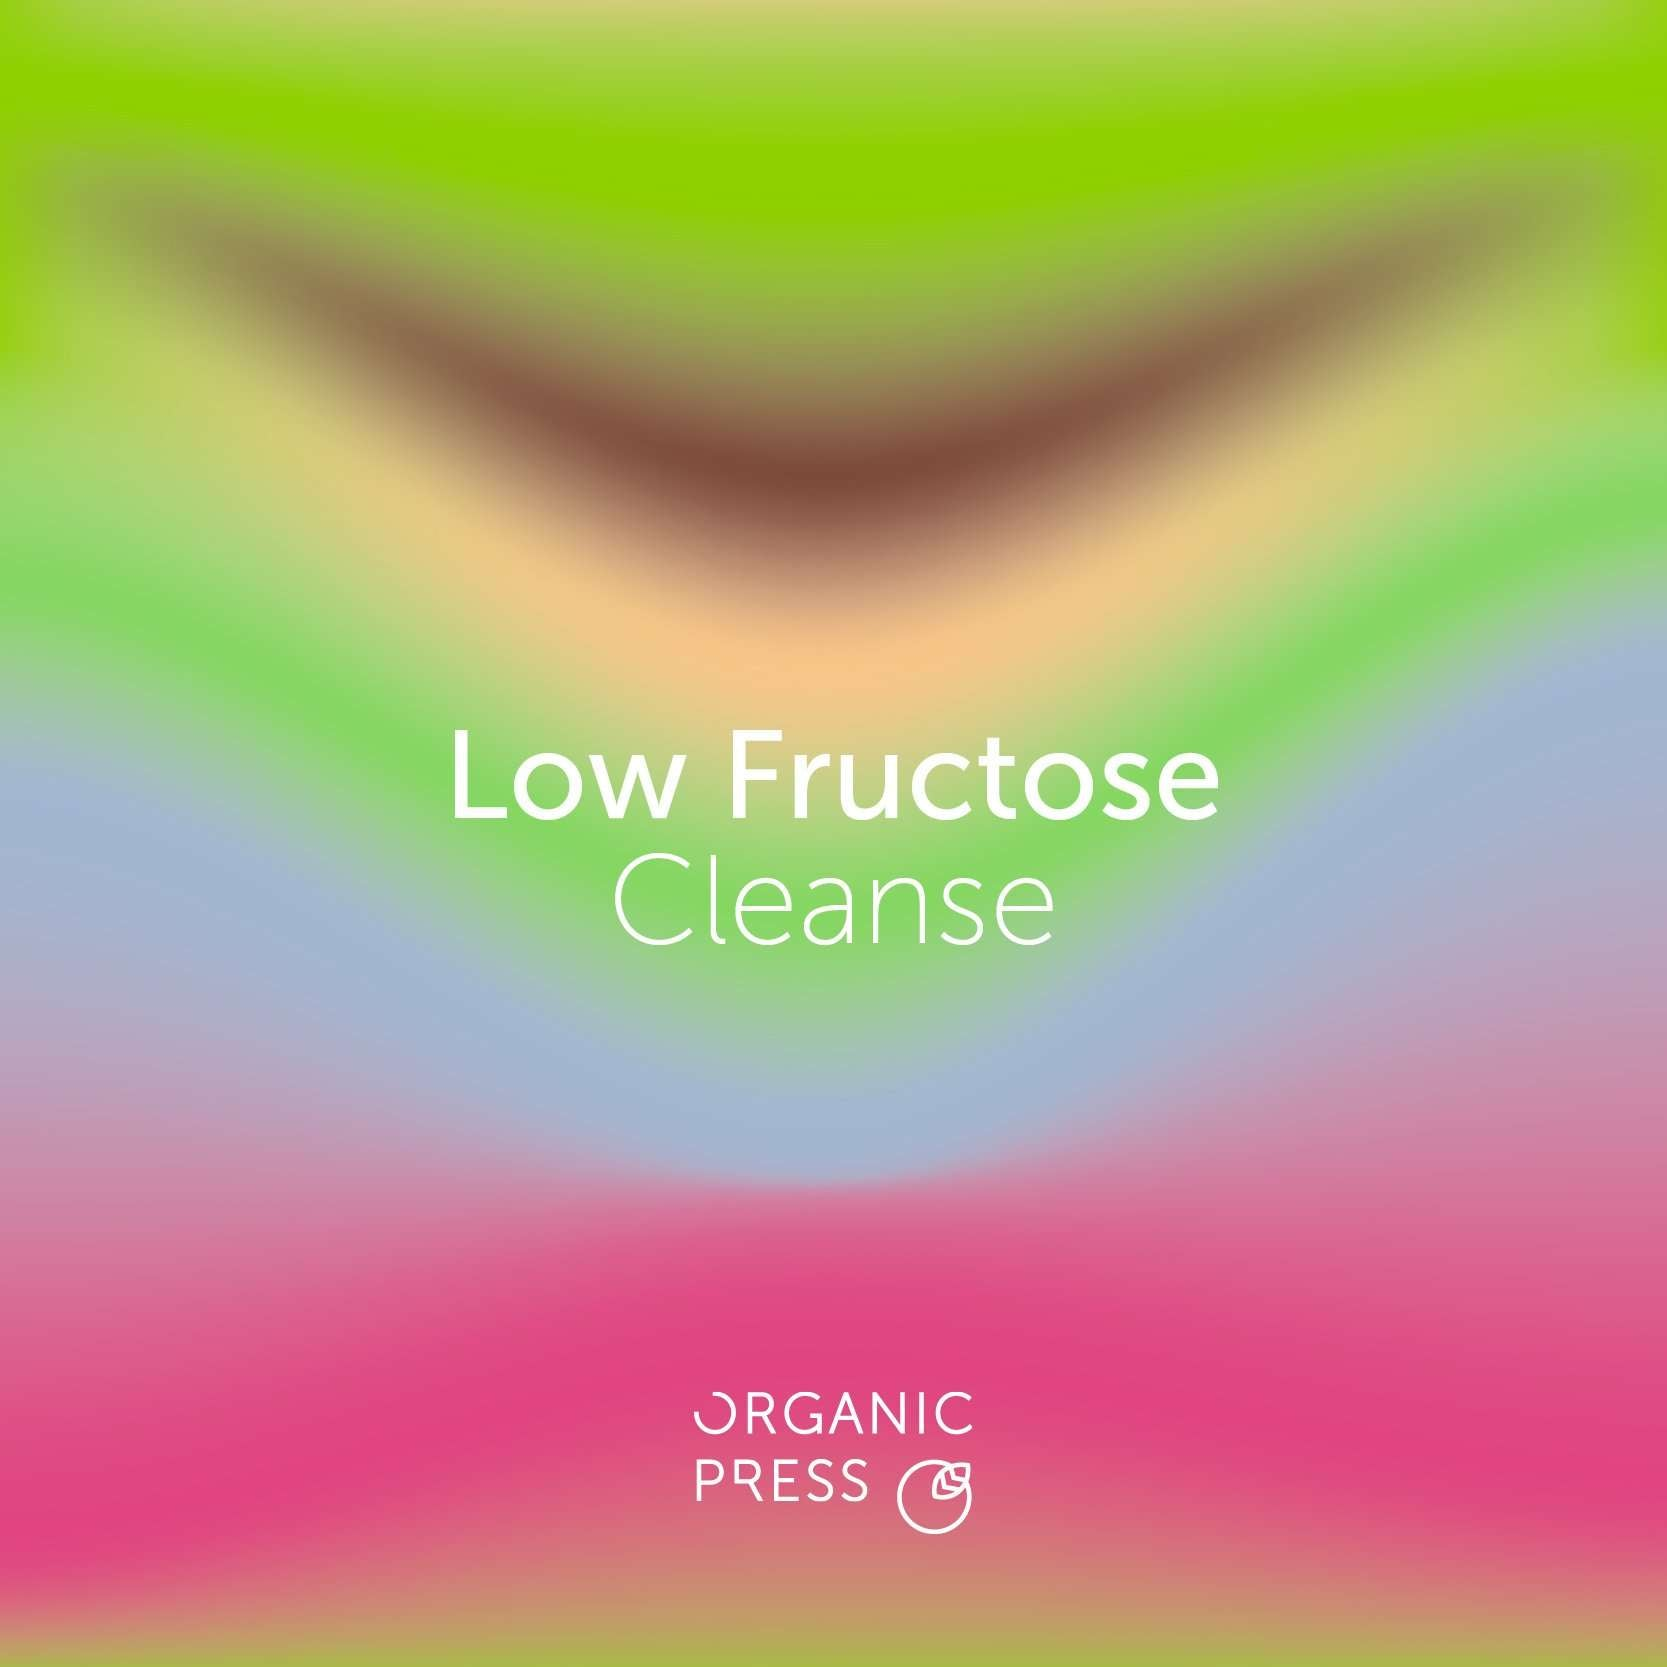 Premium Low Fructose Cleanse (8 Juices)